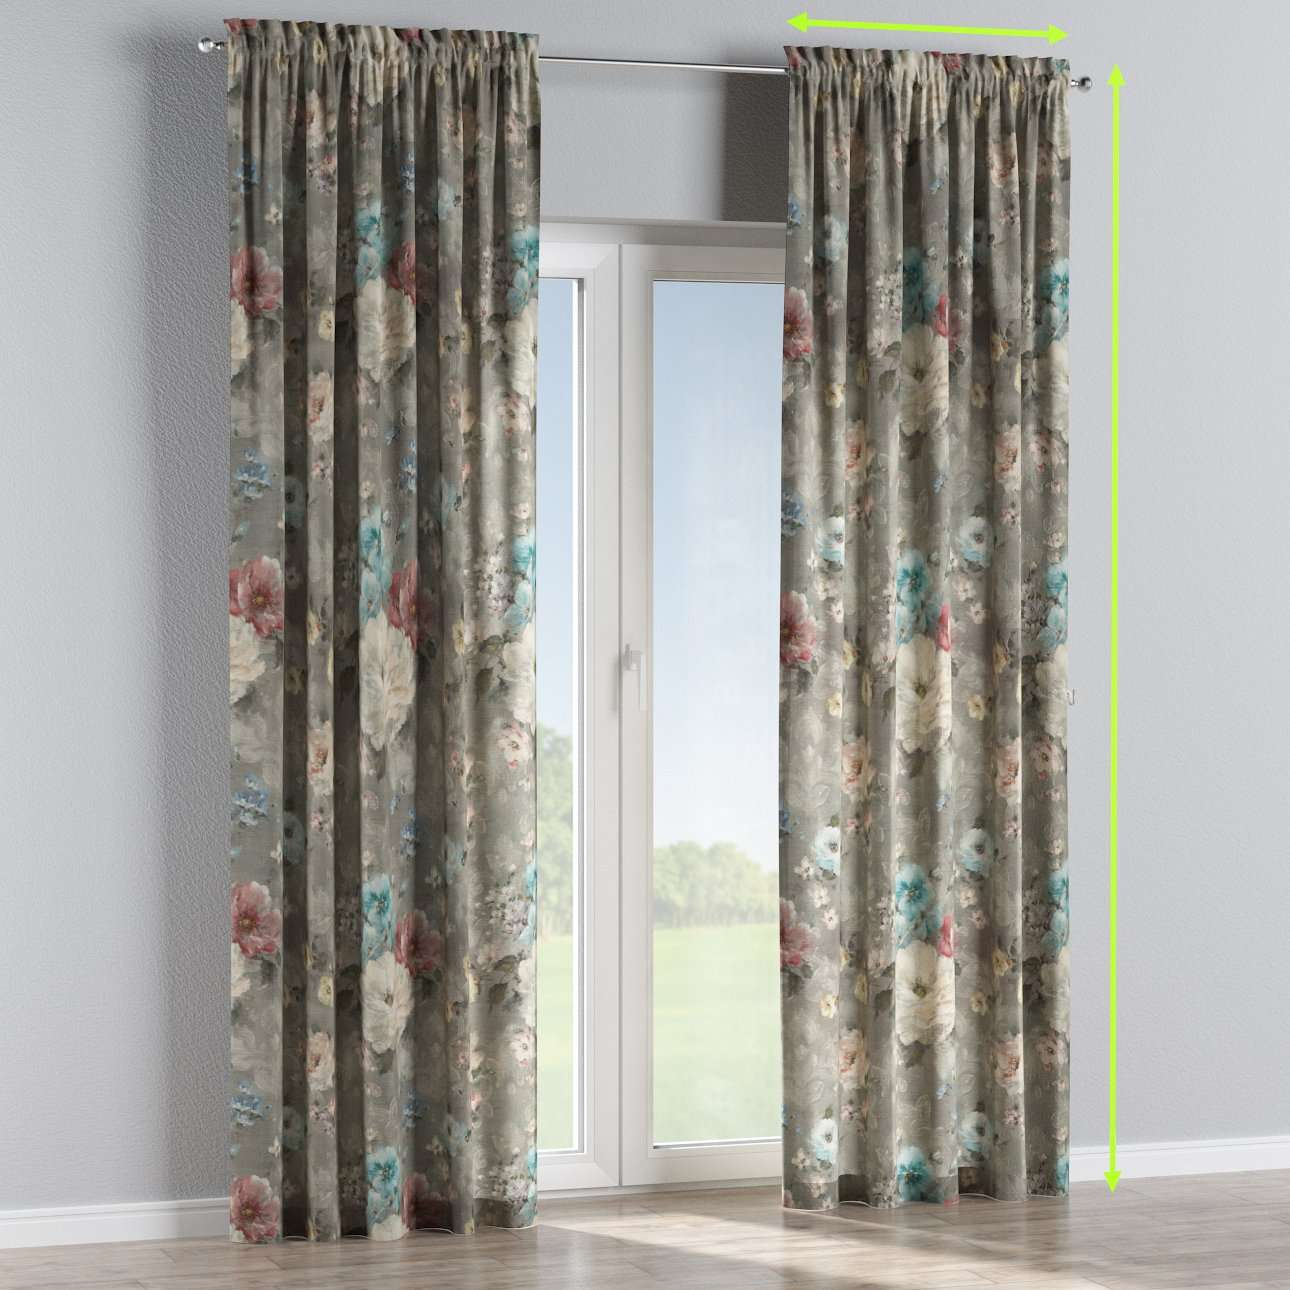 Slot and frill lined curtains in collection Monet, fabric: 137-81